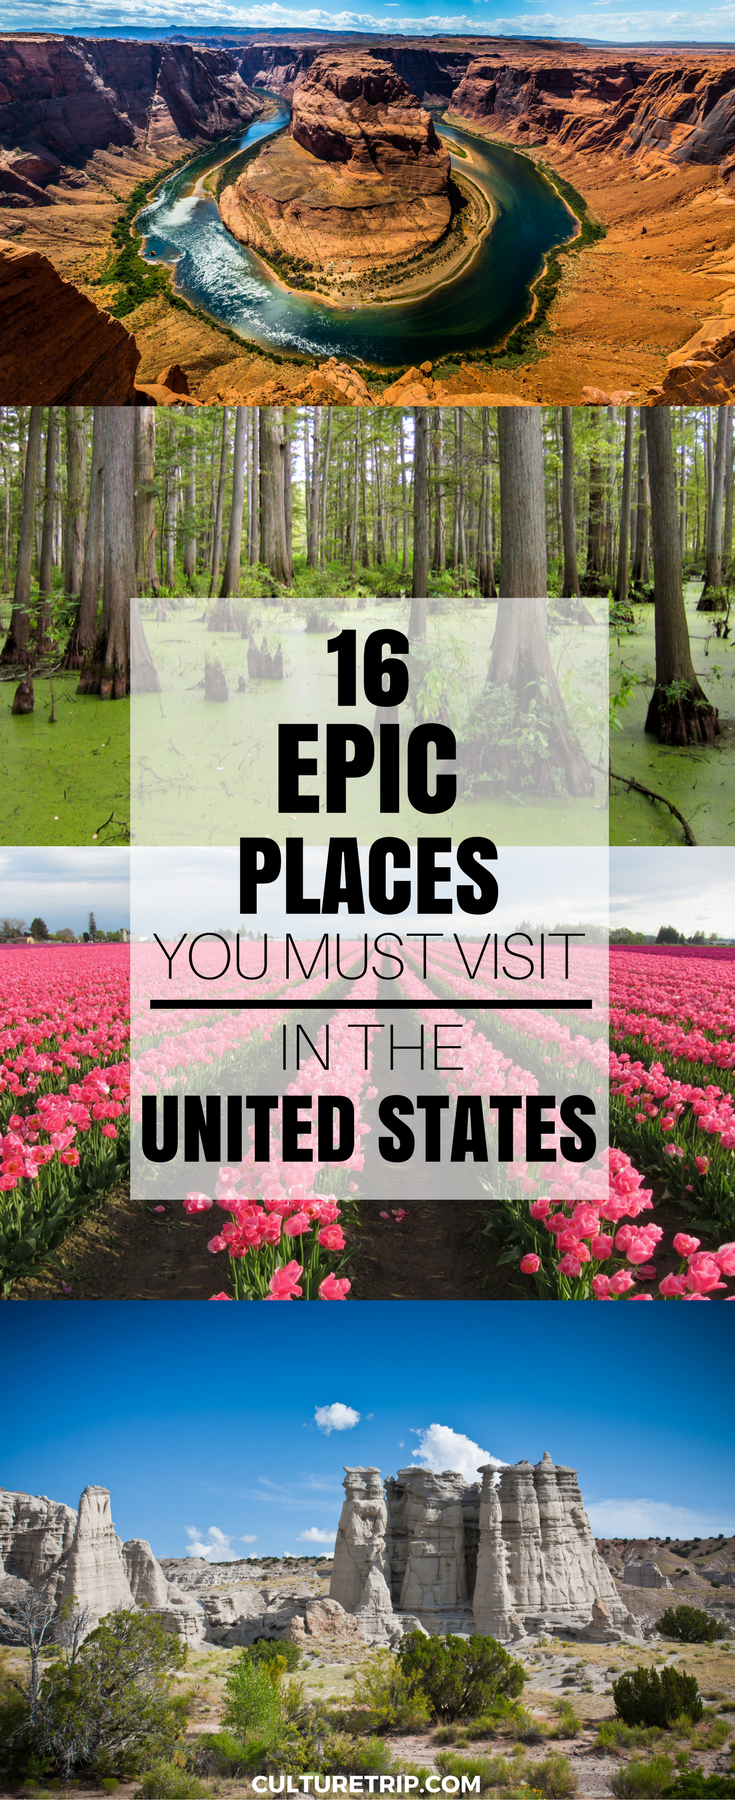 16 Epic Places in the United States Even Americans Don't Know About